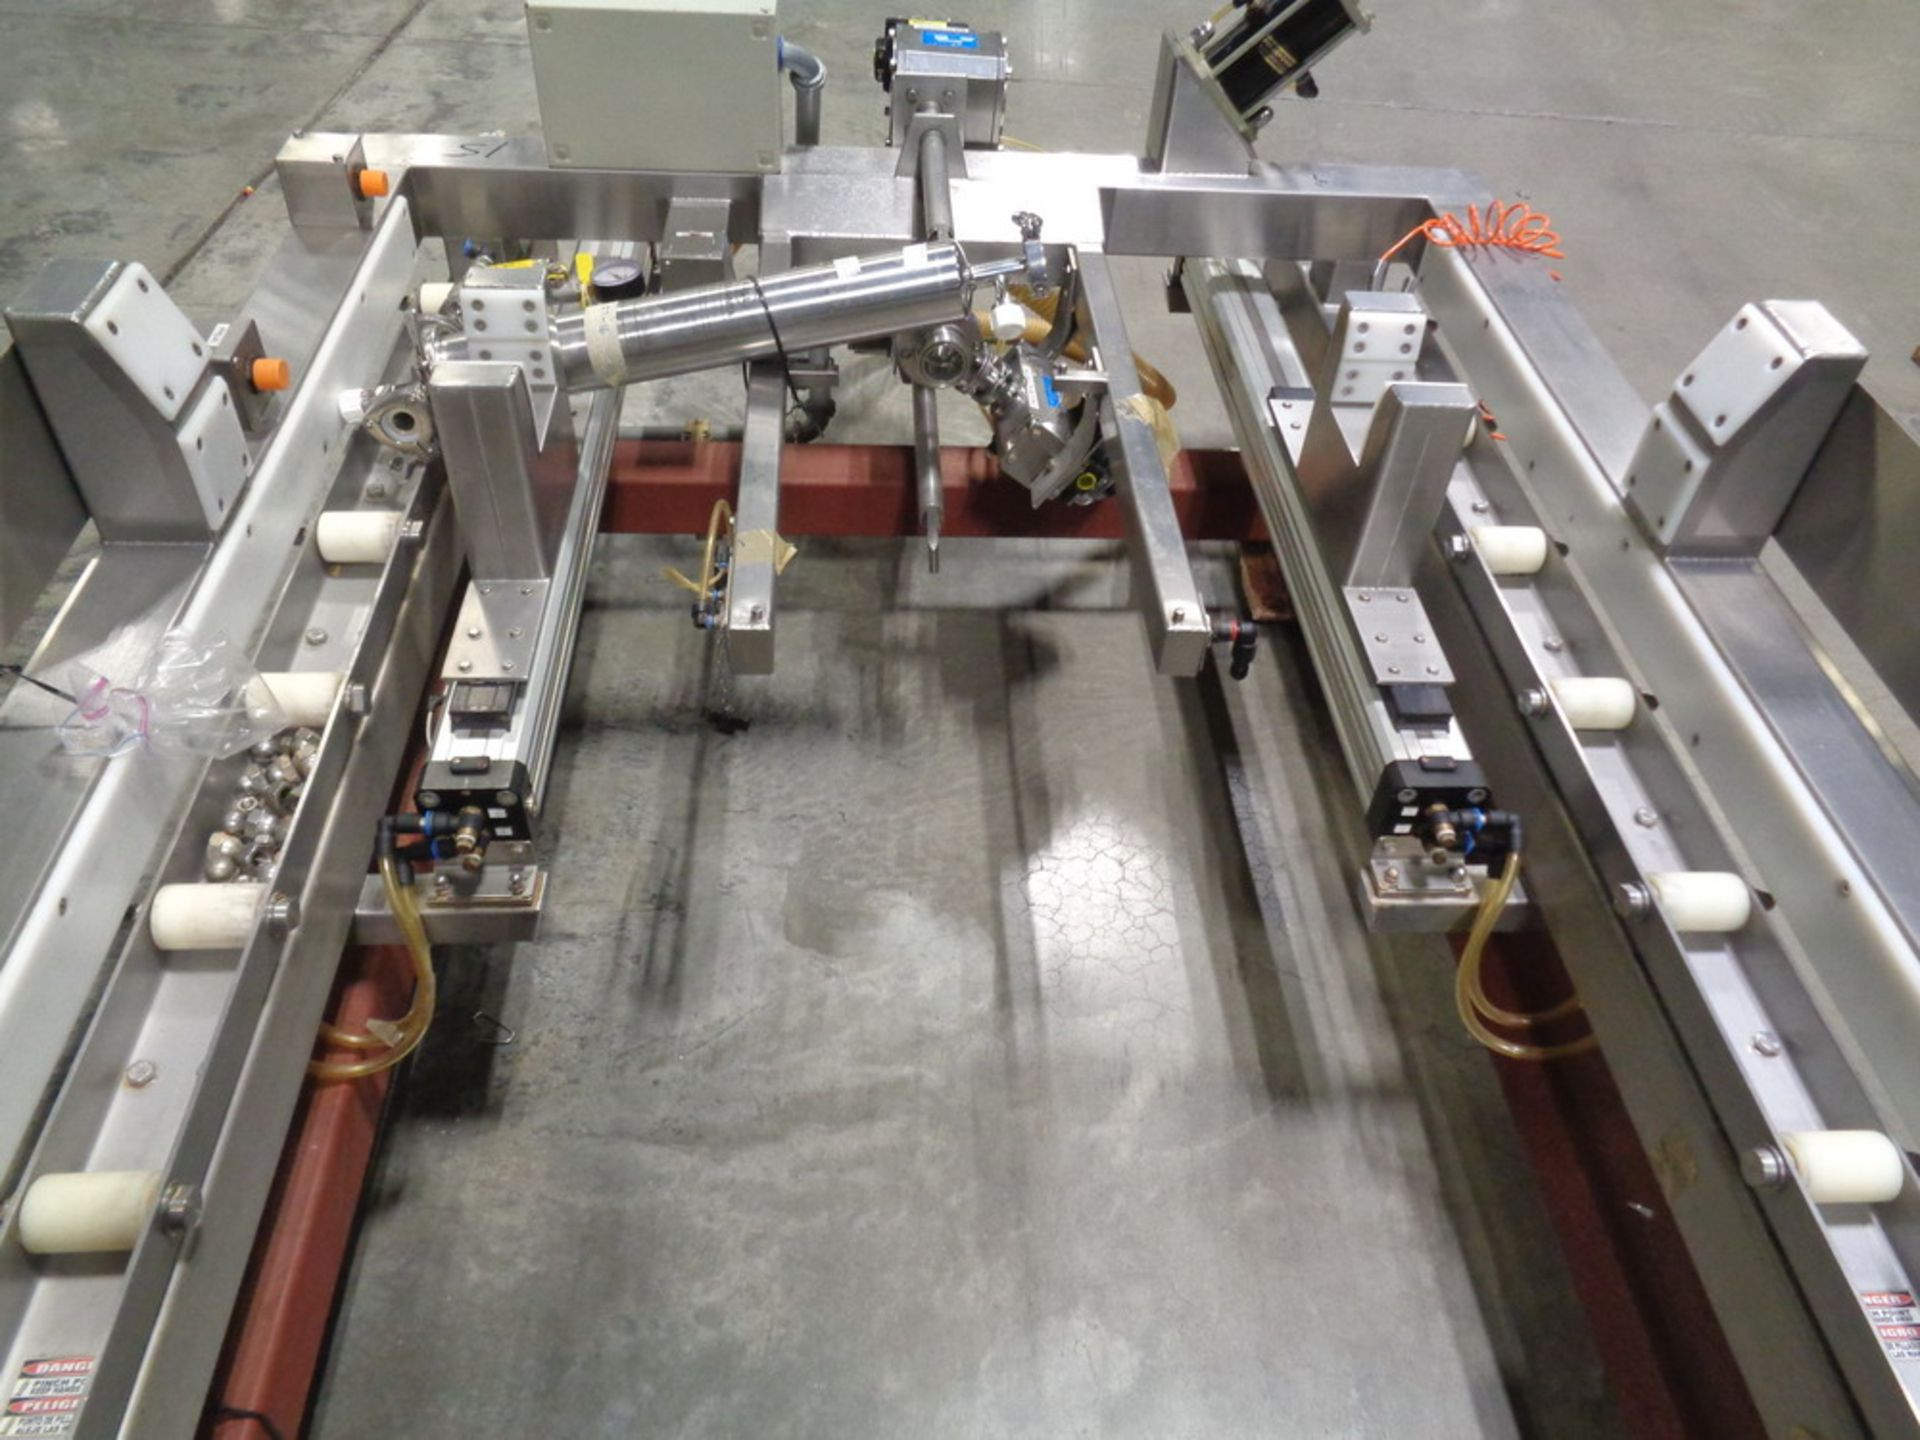 Lot 201 - Tote Systems Stainless Steel Tote Docking and Discharge Station